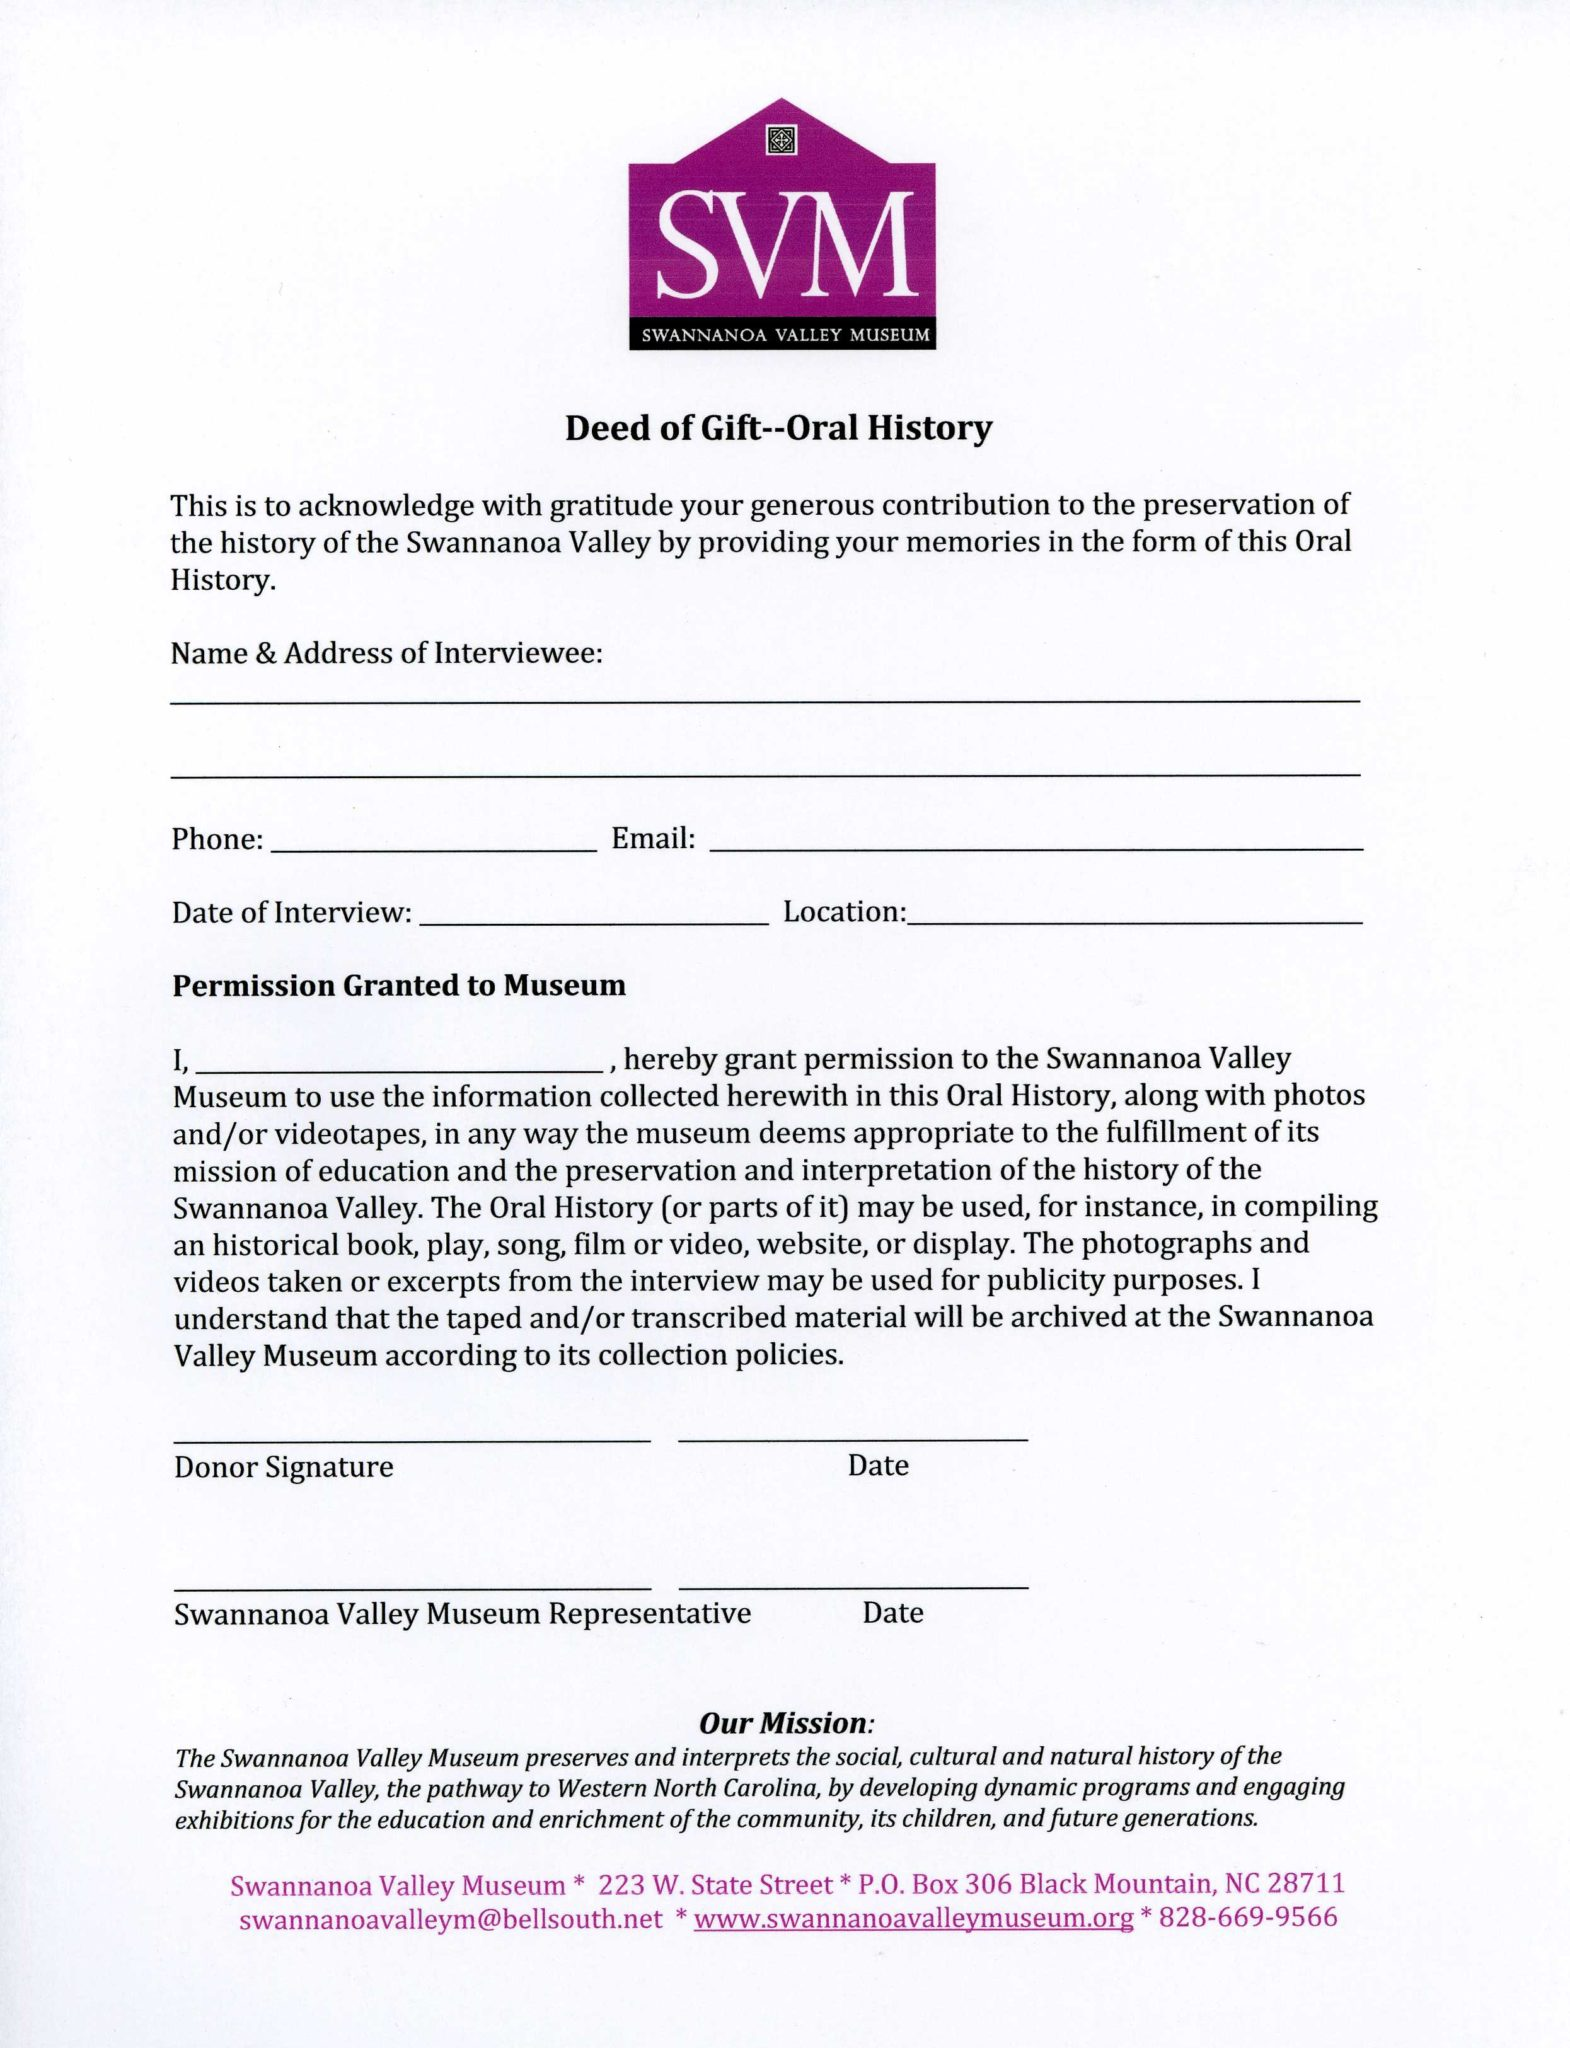 Deed of Gift – Oral History   Swannanoa Valley Museum & History Center